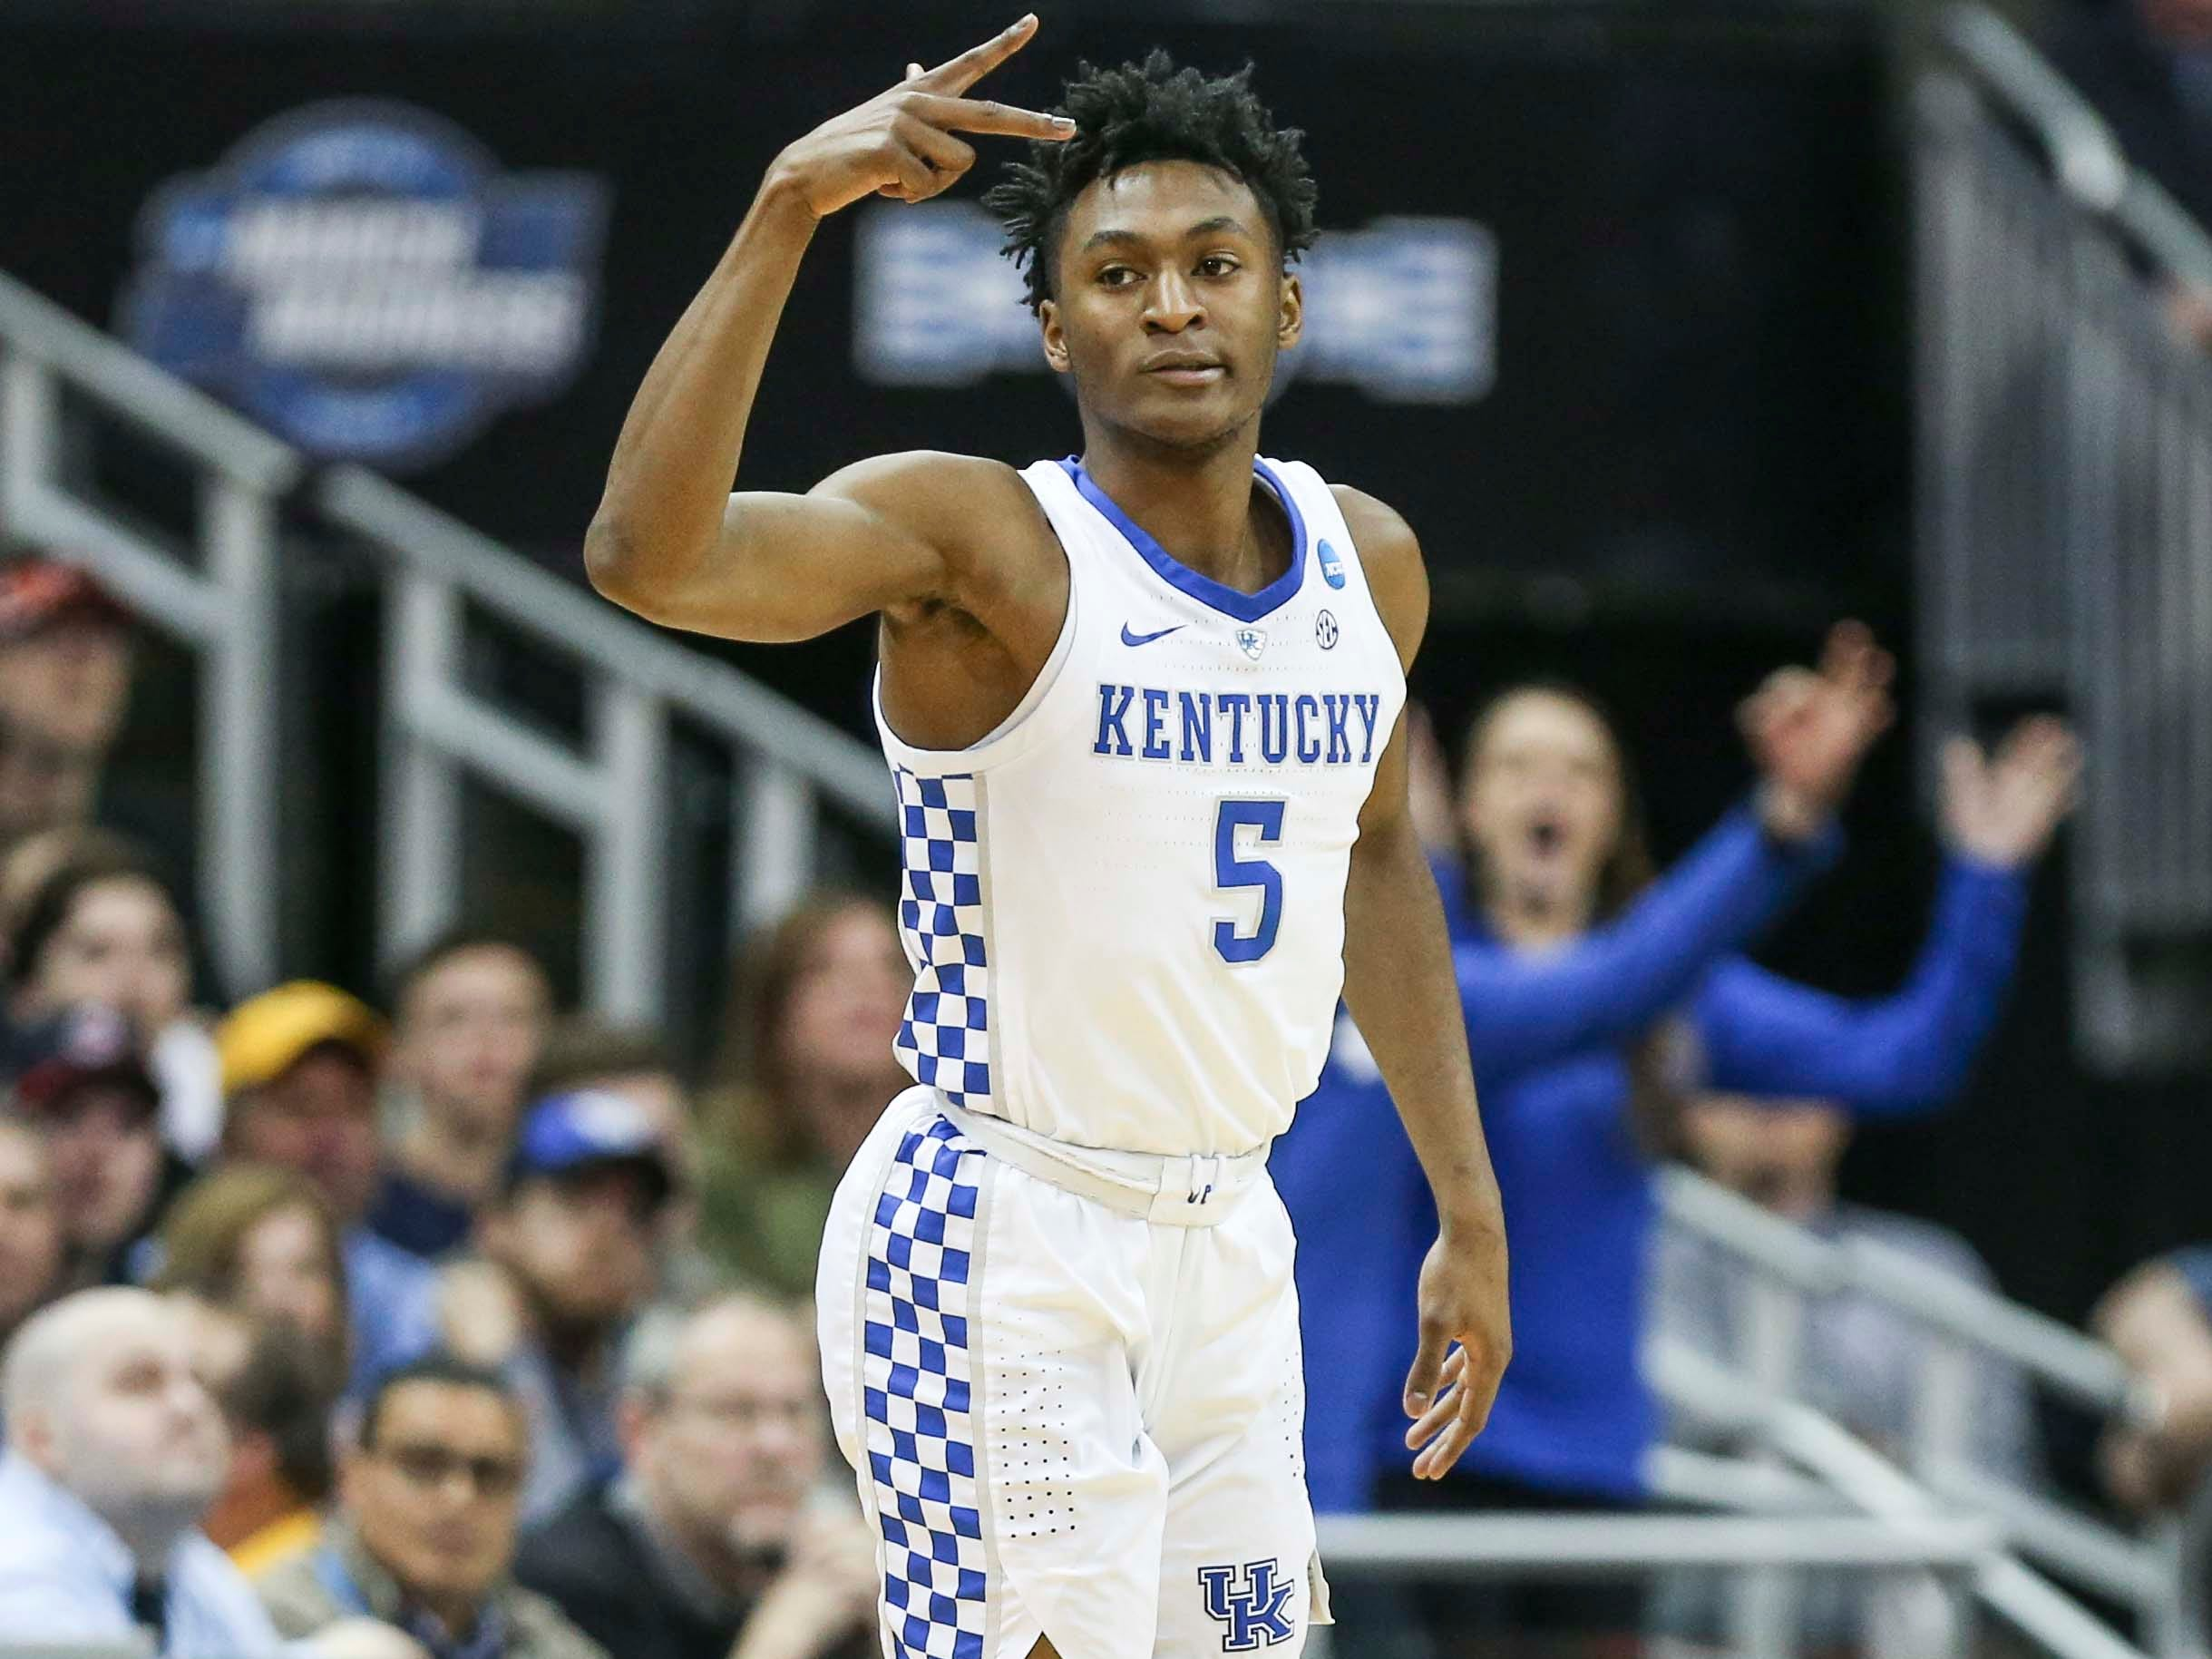 Kentucky's Immanuel Quickley celebrates a three-point shot in the first half against Auburn Sunday aftermnoon in the Elite Eight. March 31, 2019